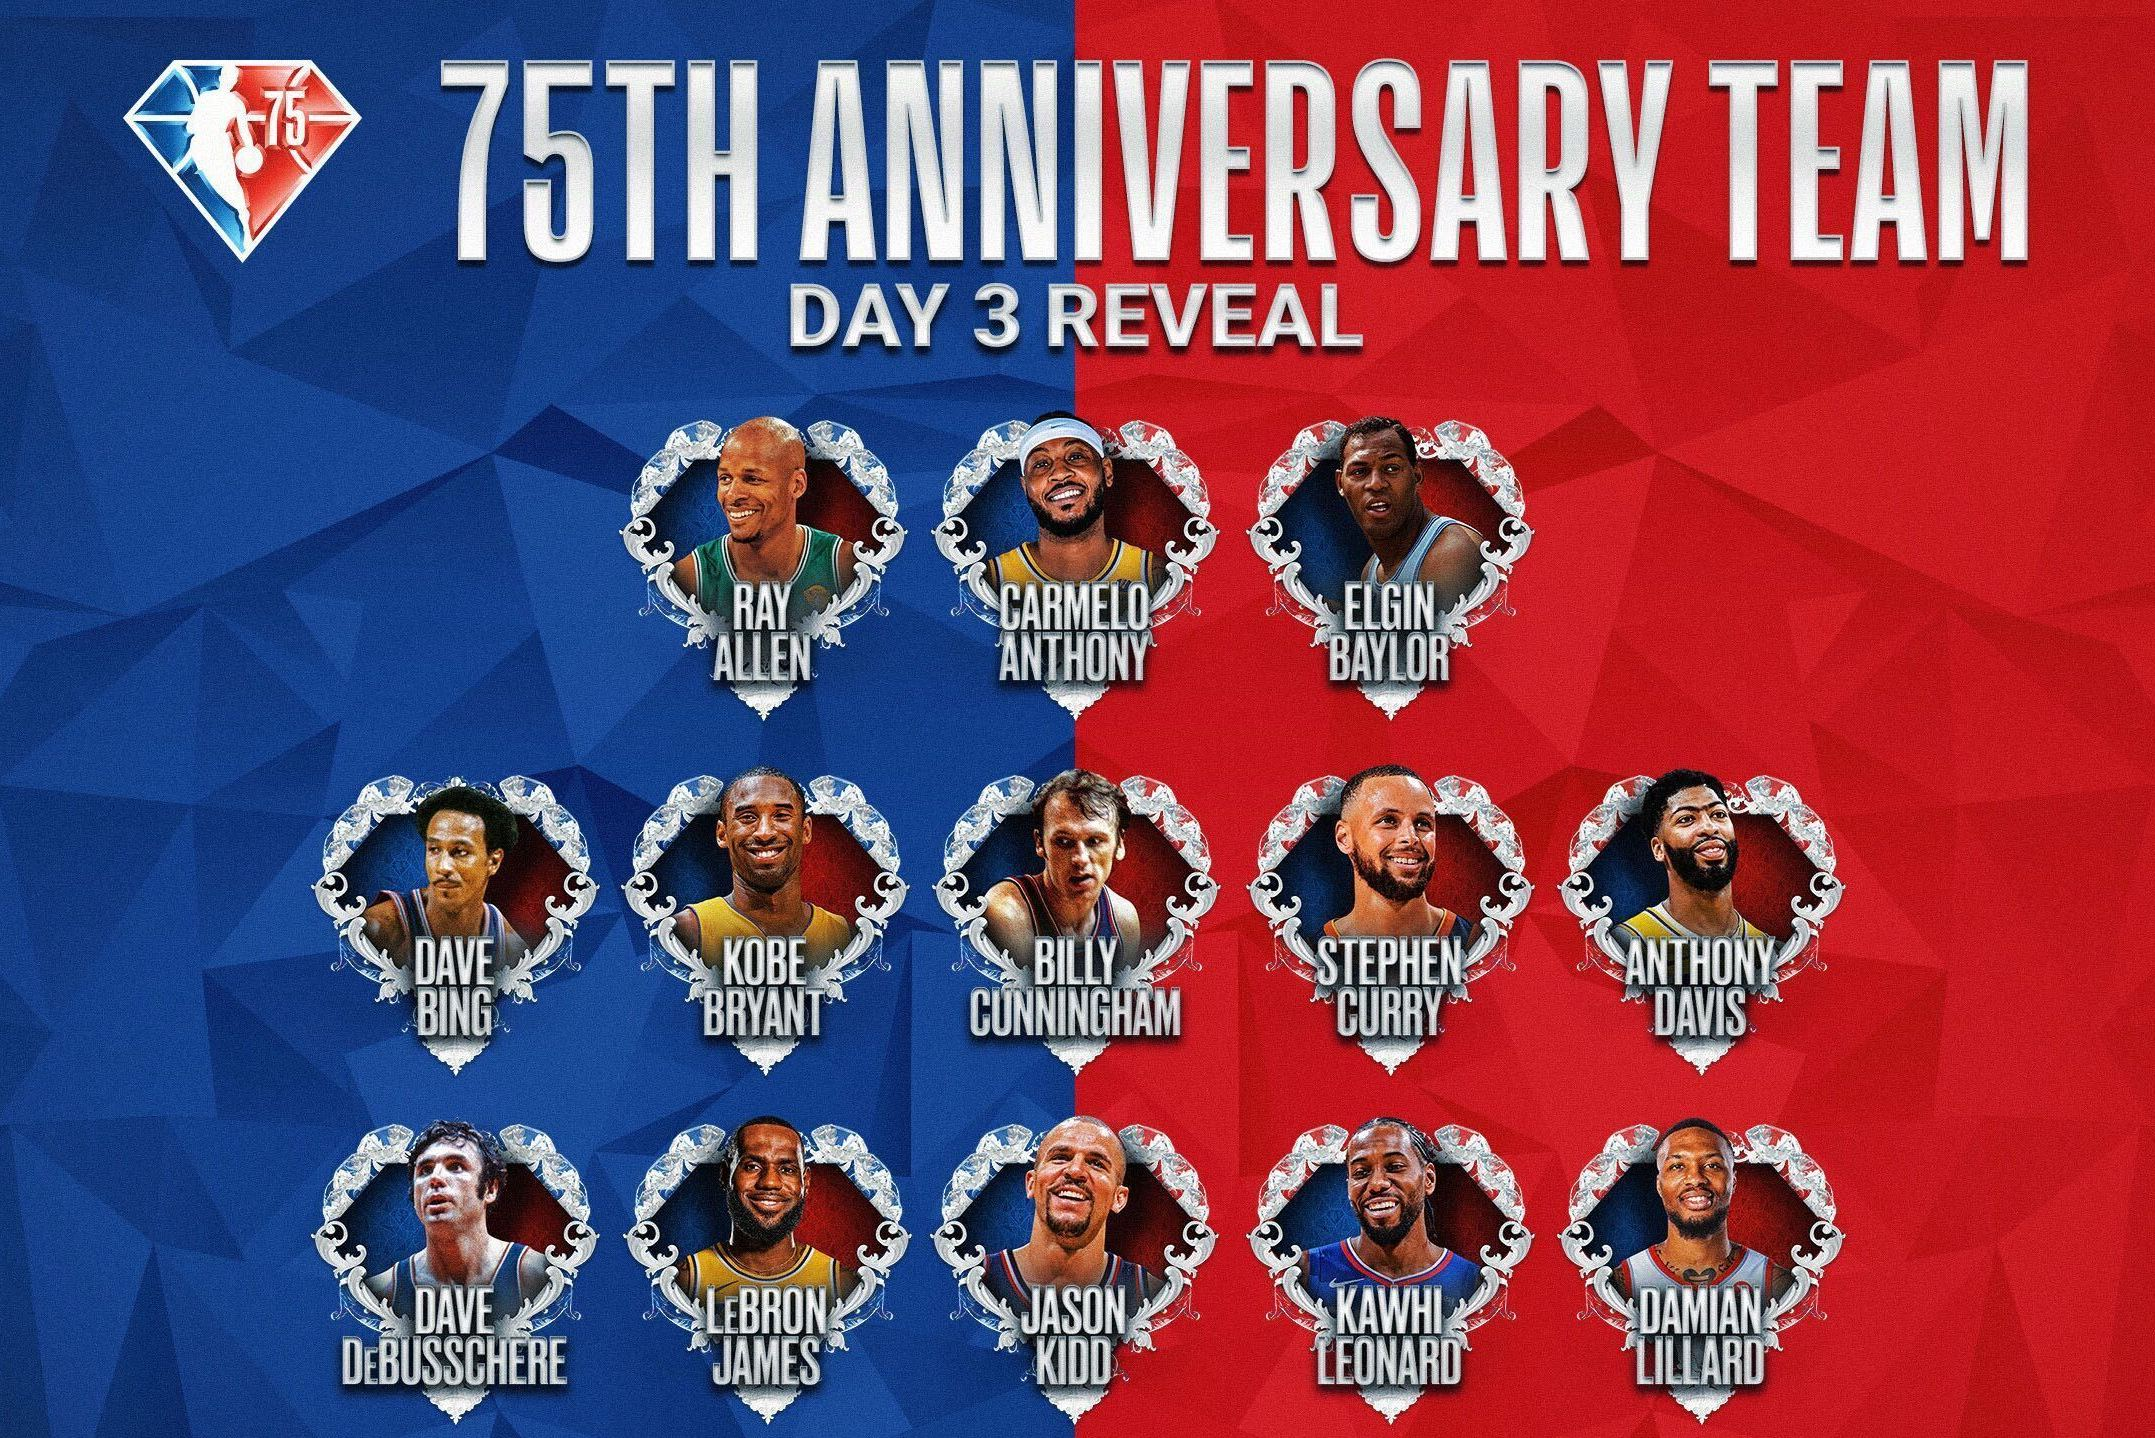 Twitter reacts to final players named to NBA 75th Anniversary Team